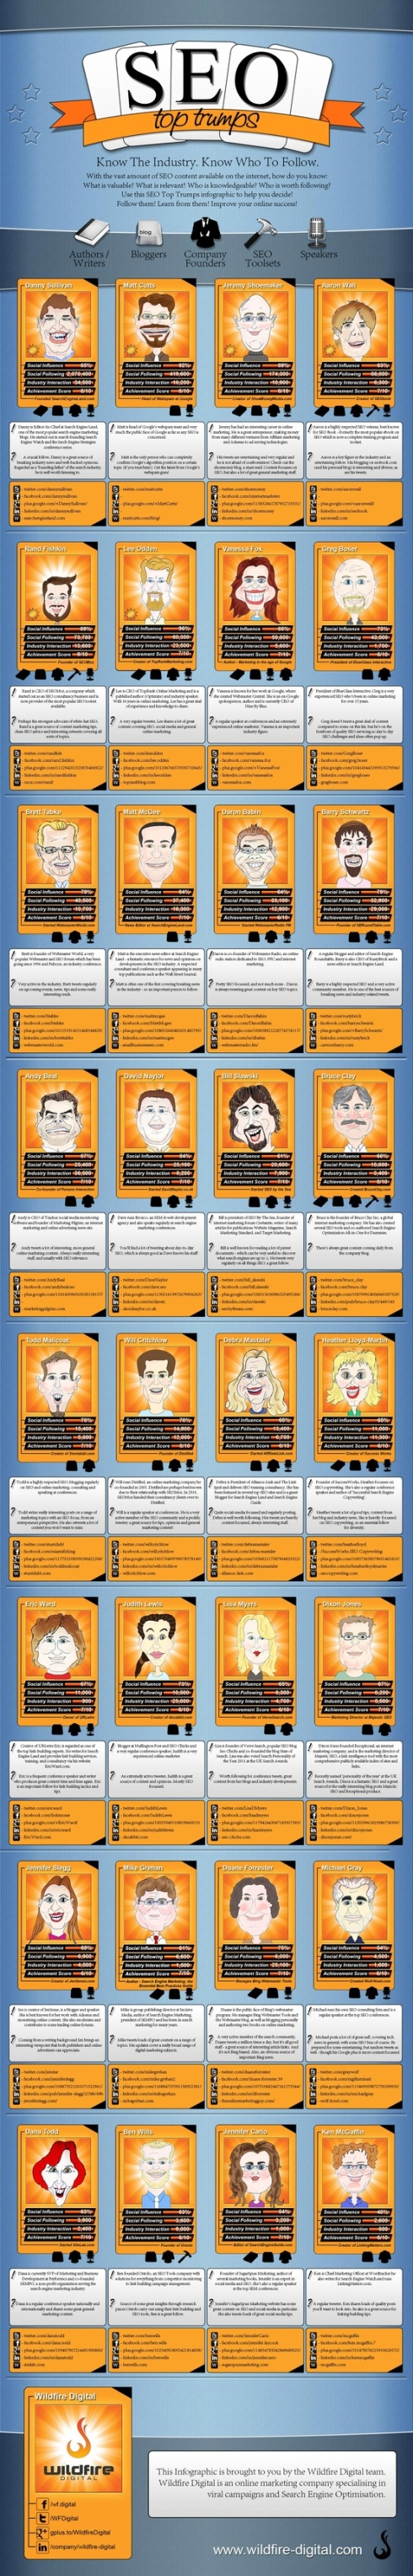 SEO Top Trumps